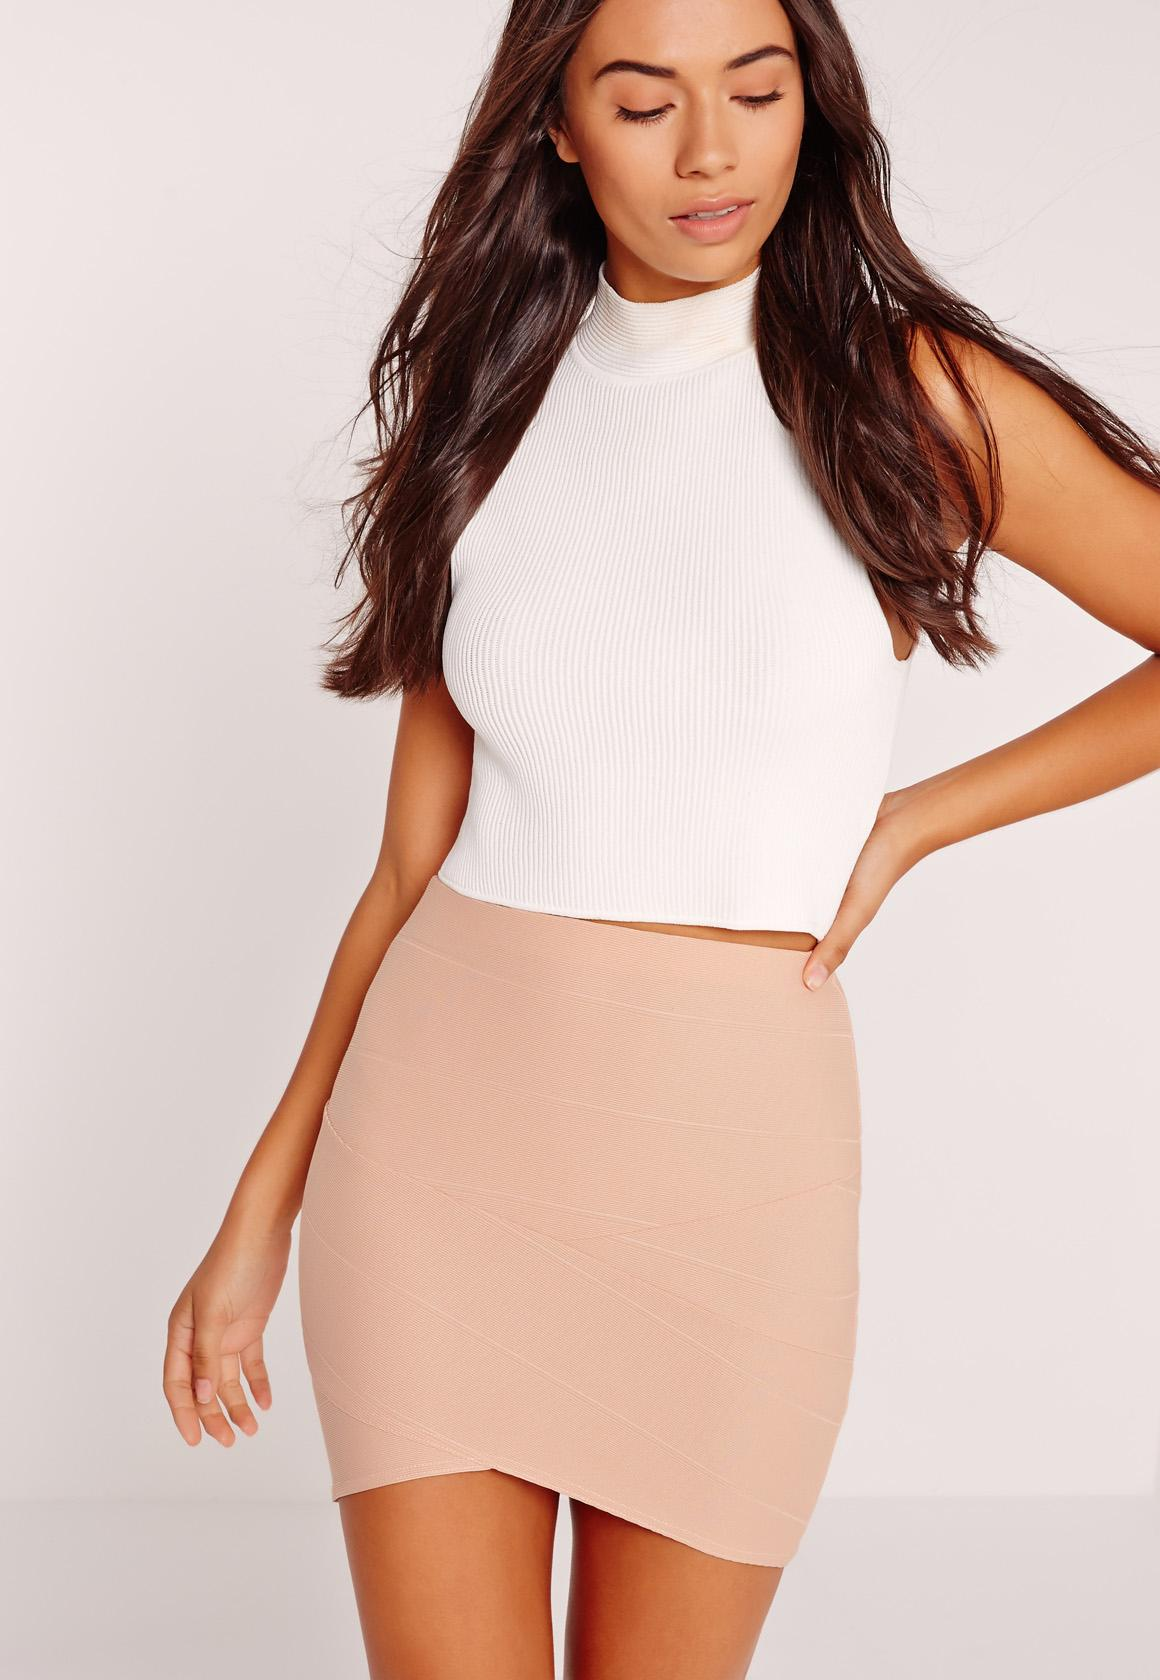 Bandage Skirts Online - Buy a Bandage Skirt | Missguided